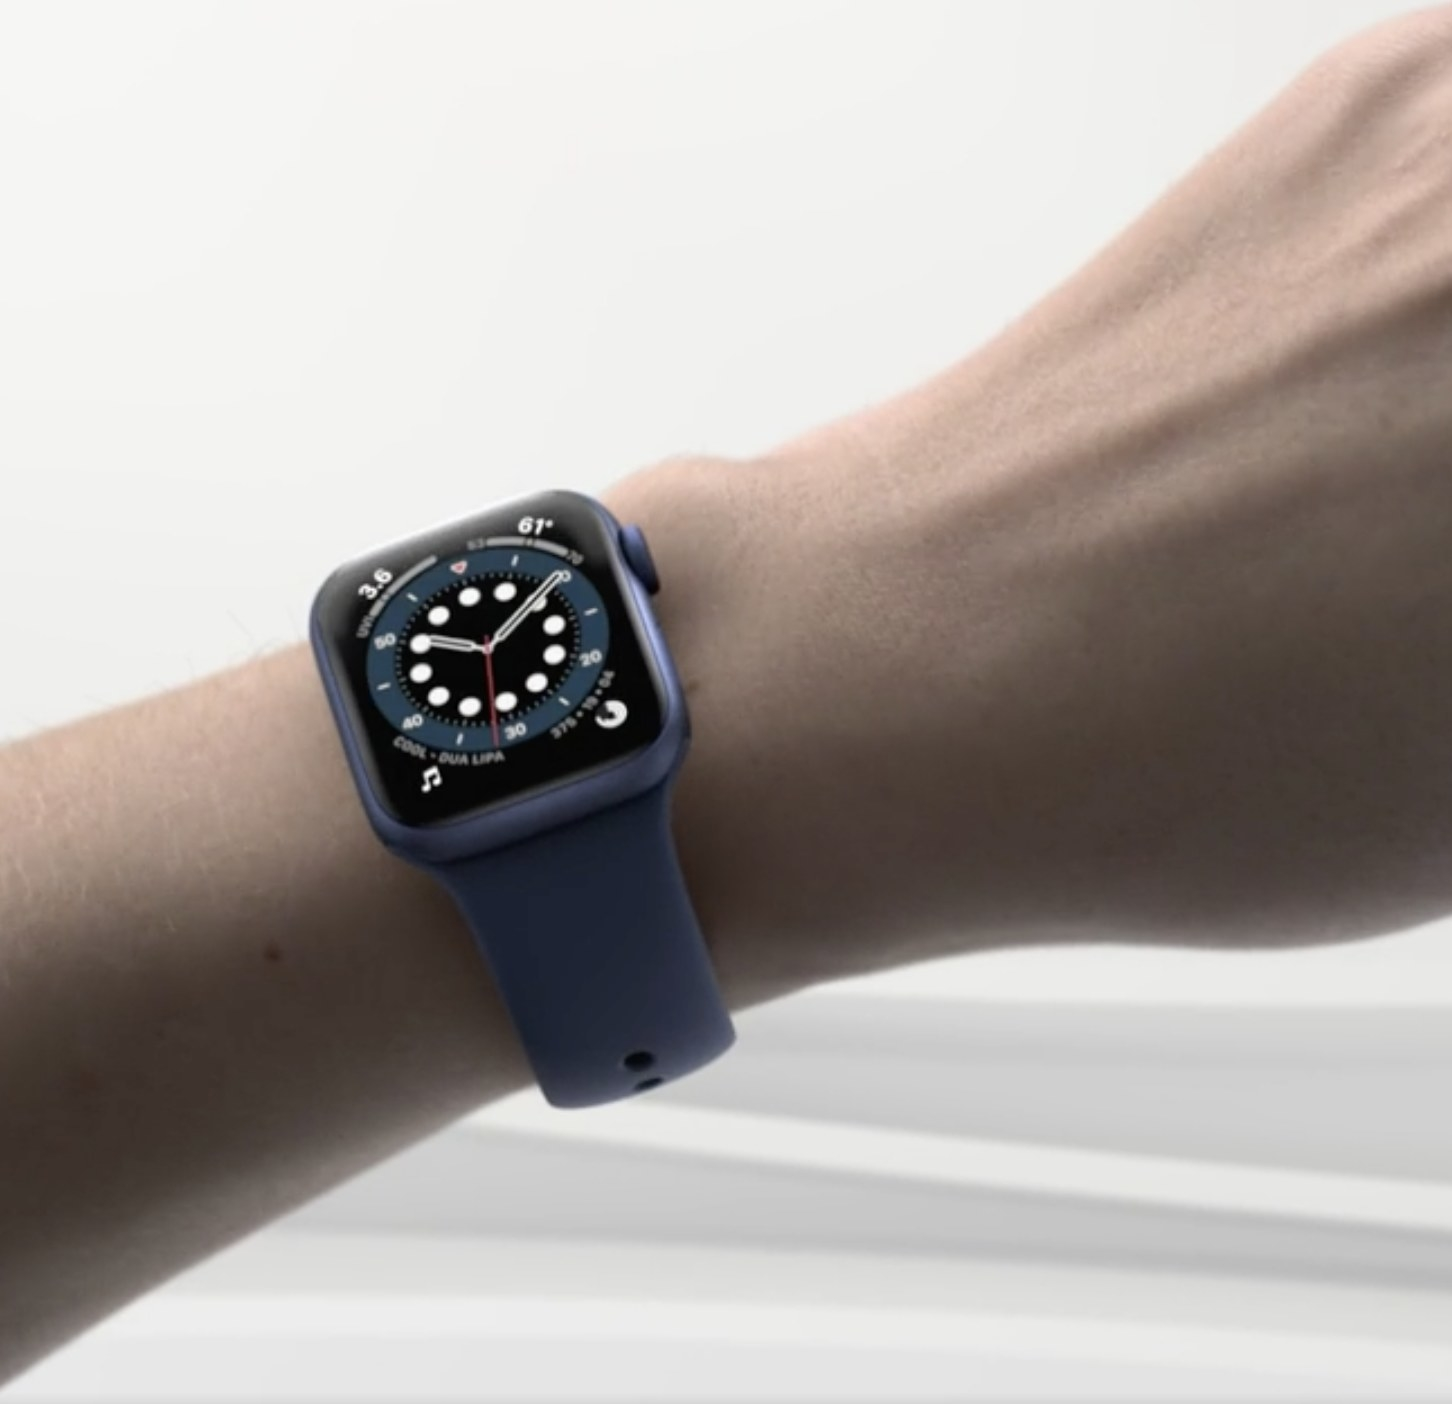 The Apple Watch on a wrist